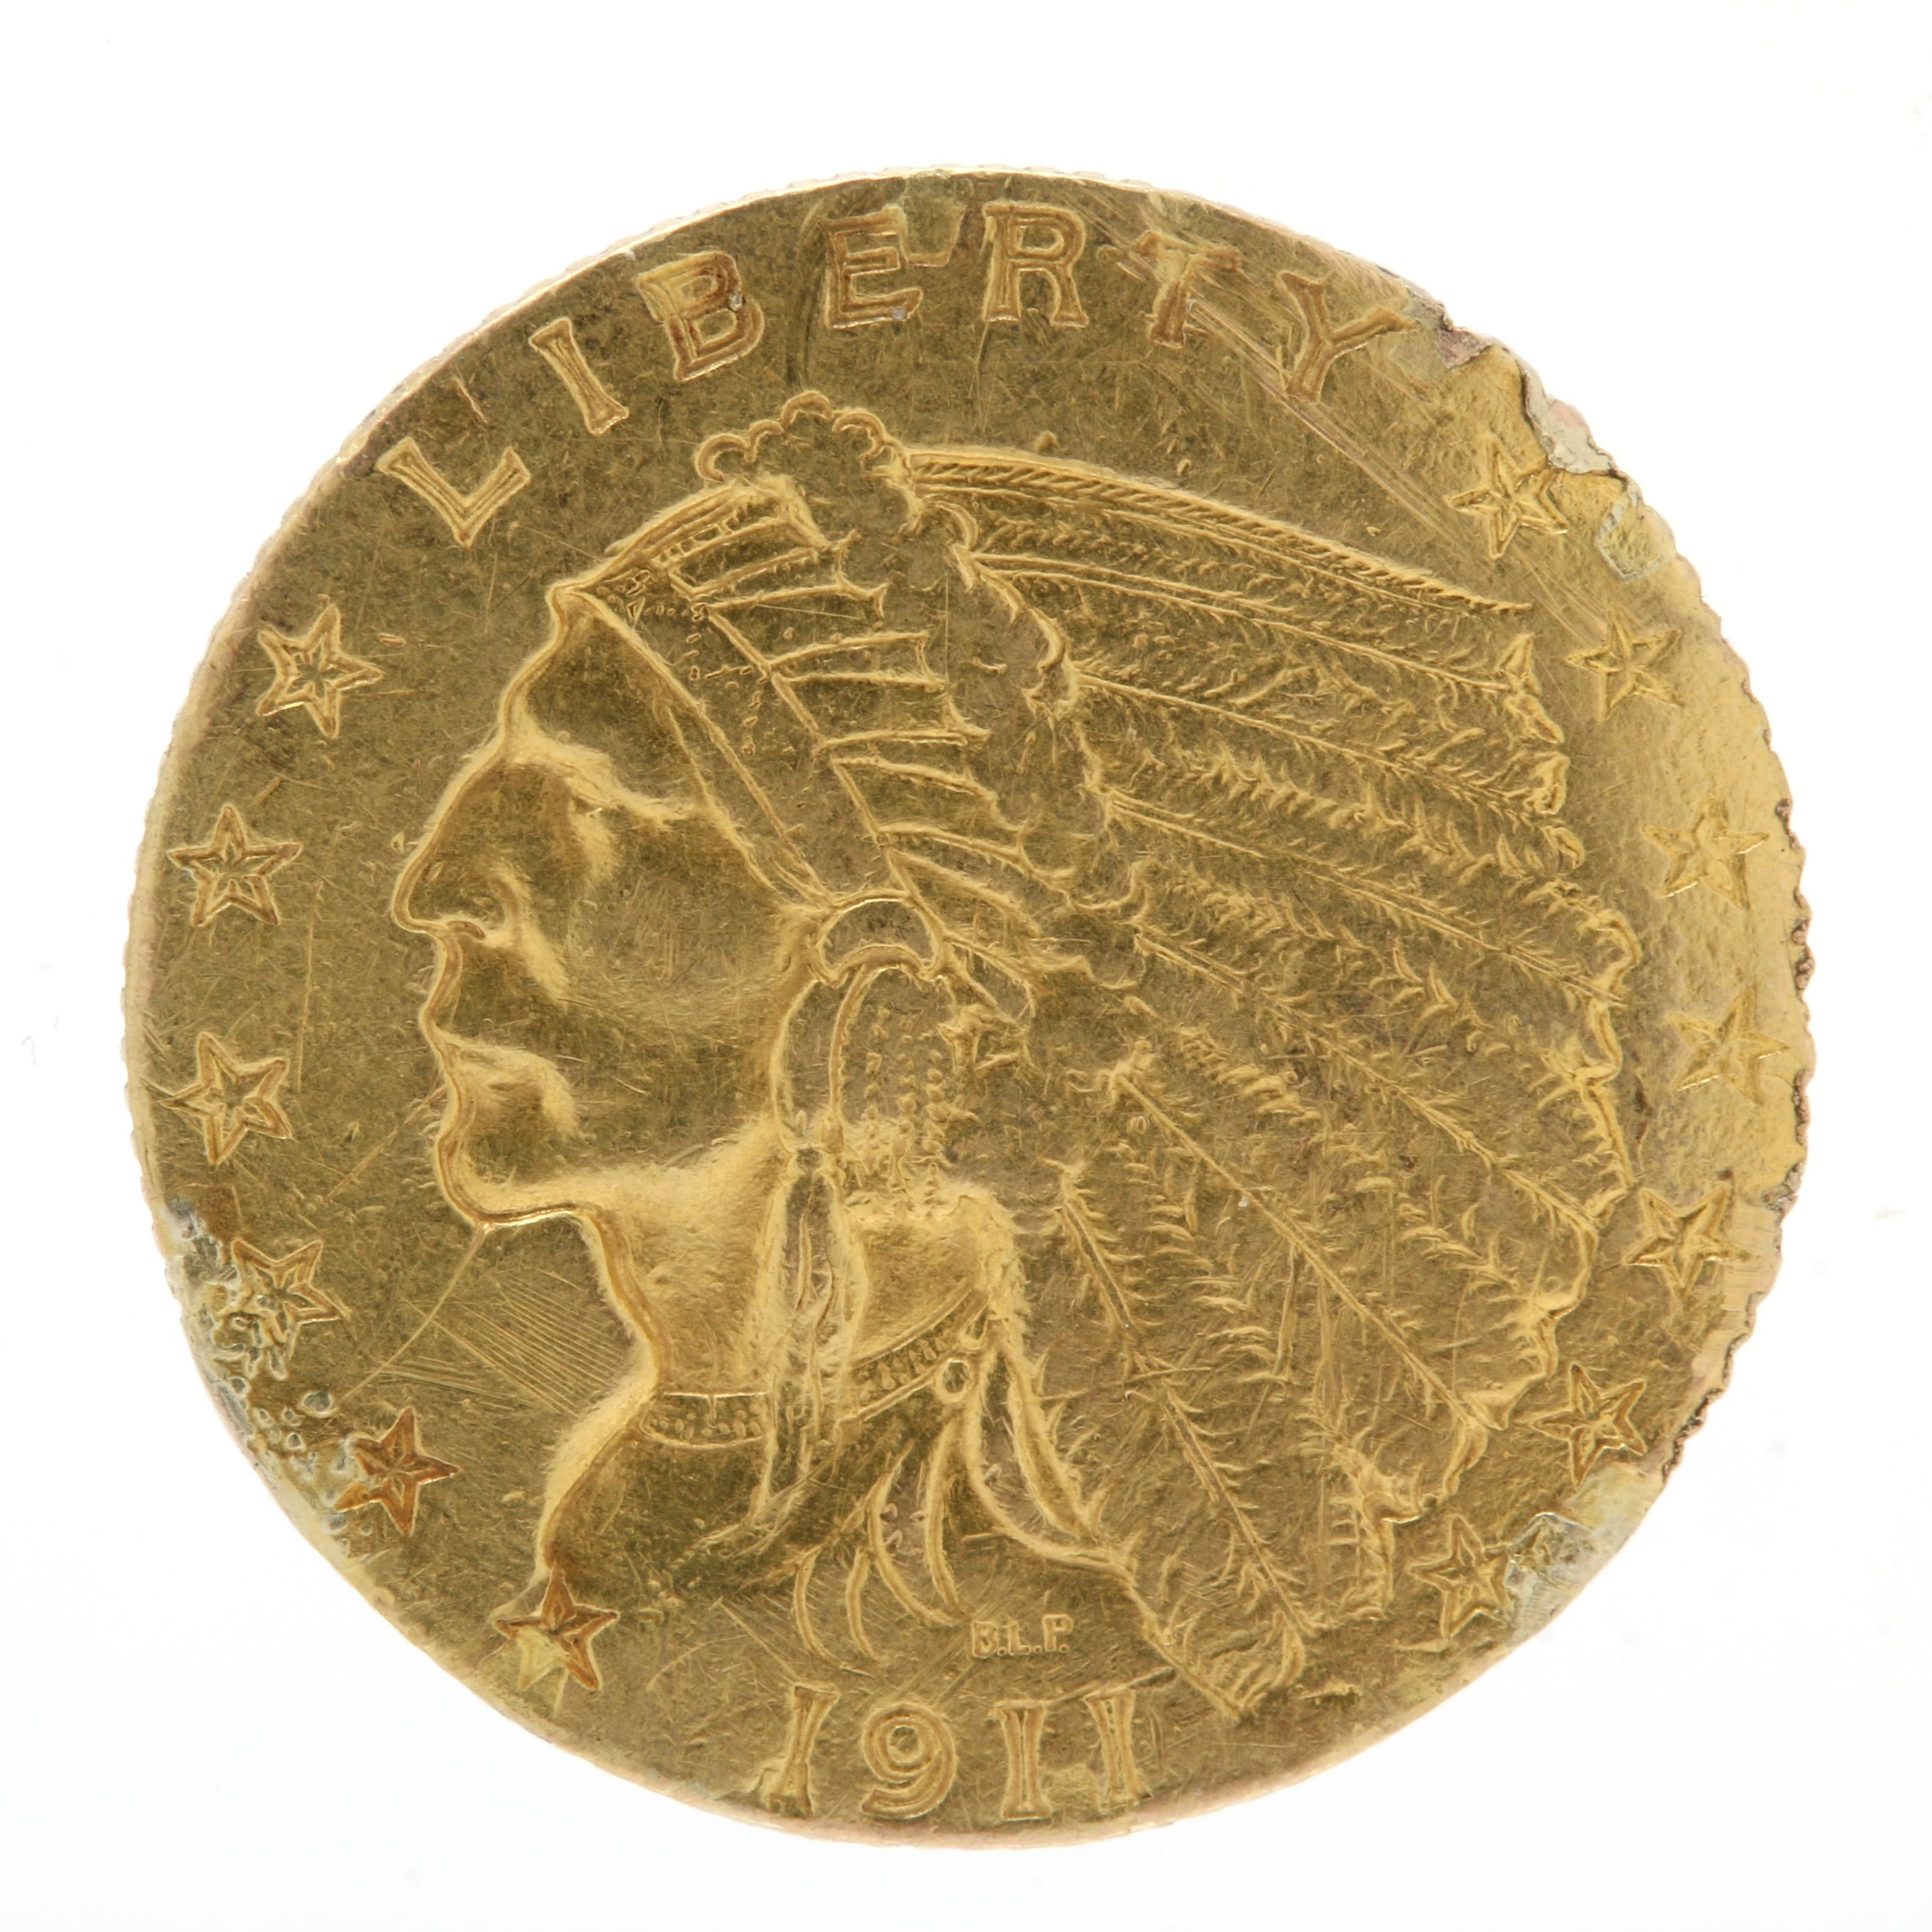 1911 Indian Head $2.50 Quarter Eagle Gold Coin